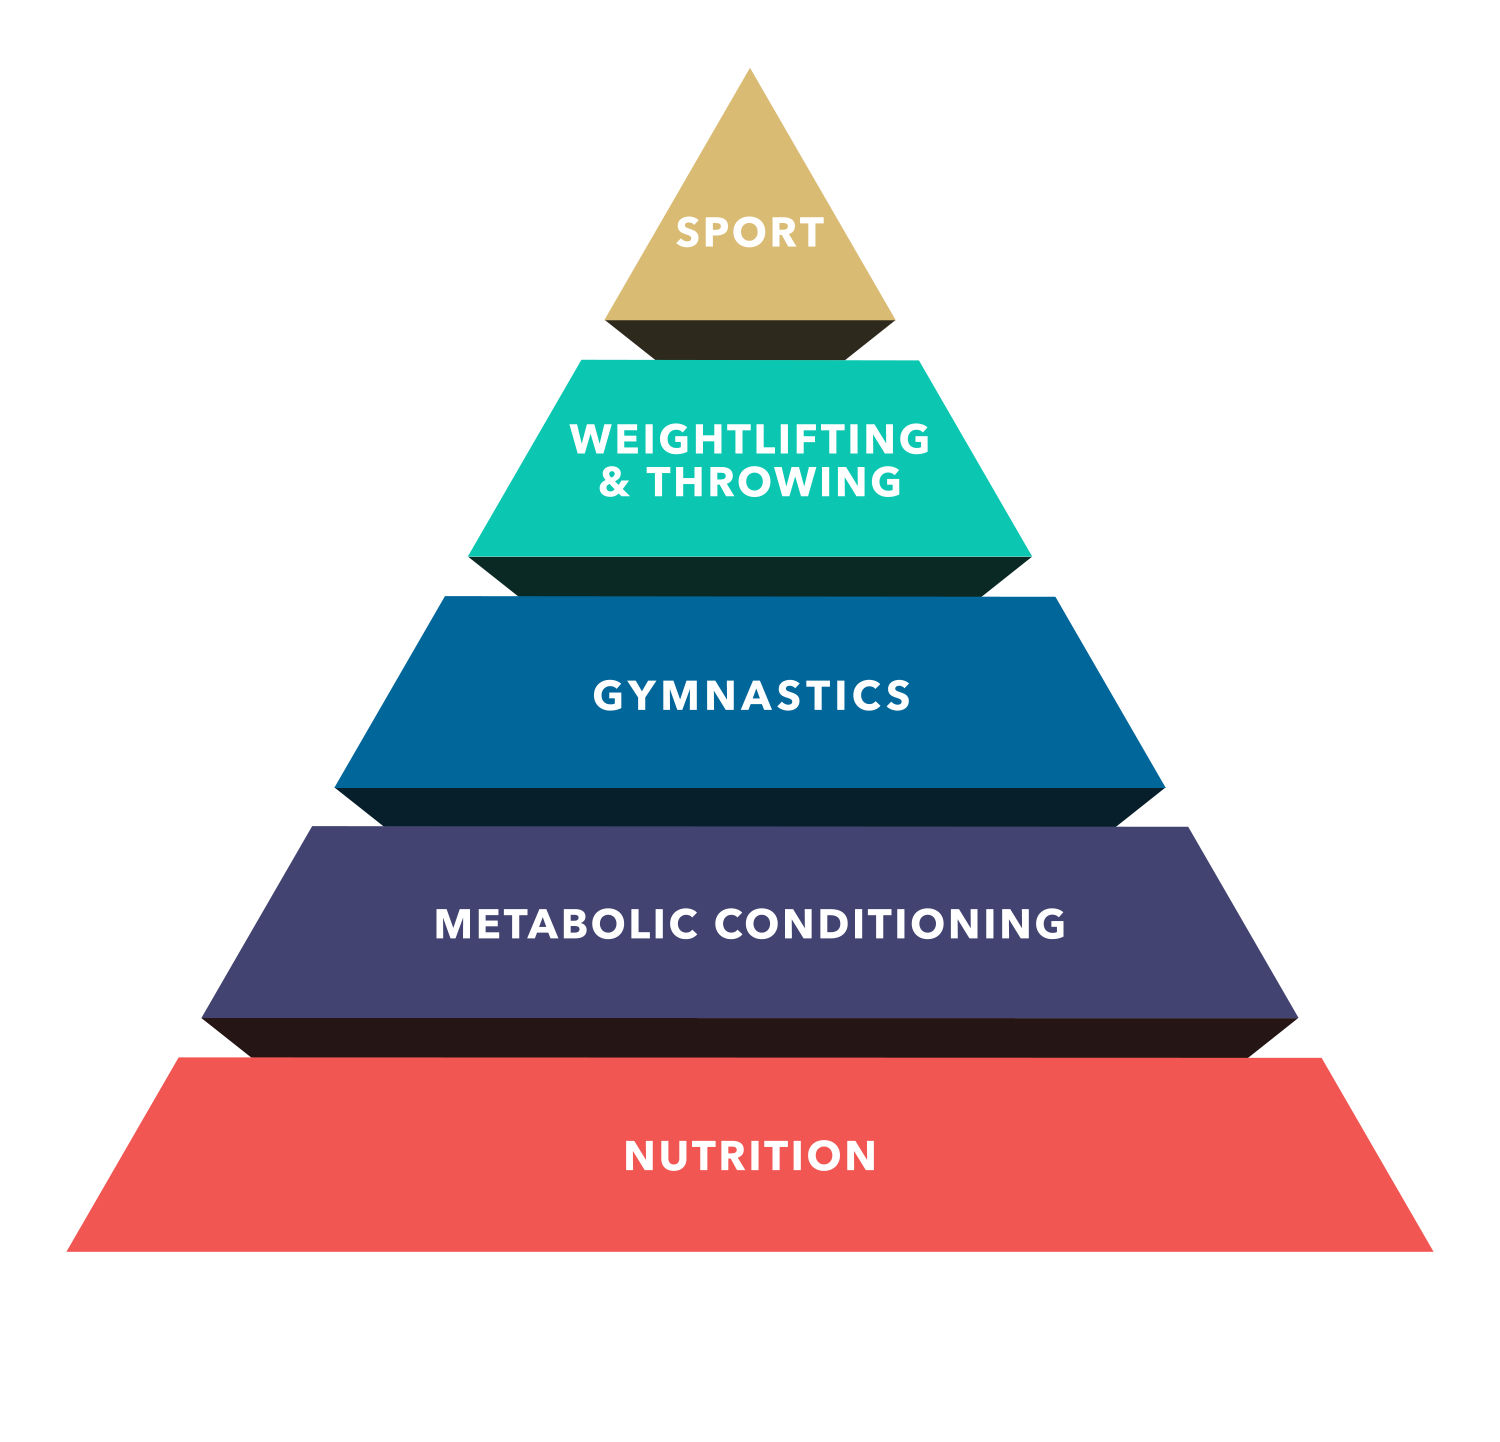 CrossFit | Theoretical Hierarchy Of Development